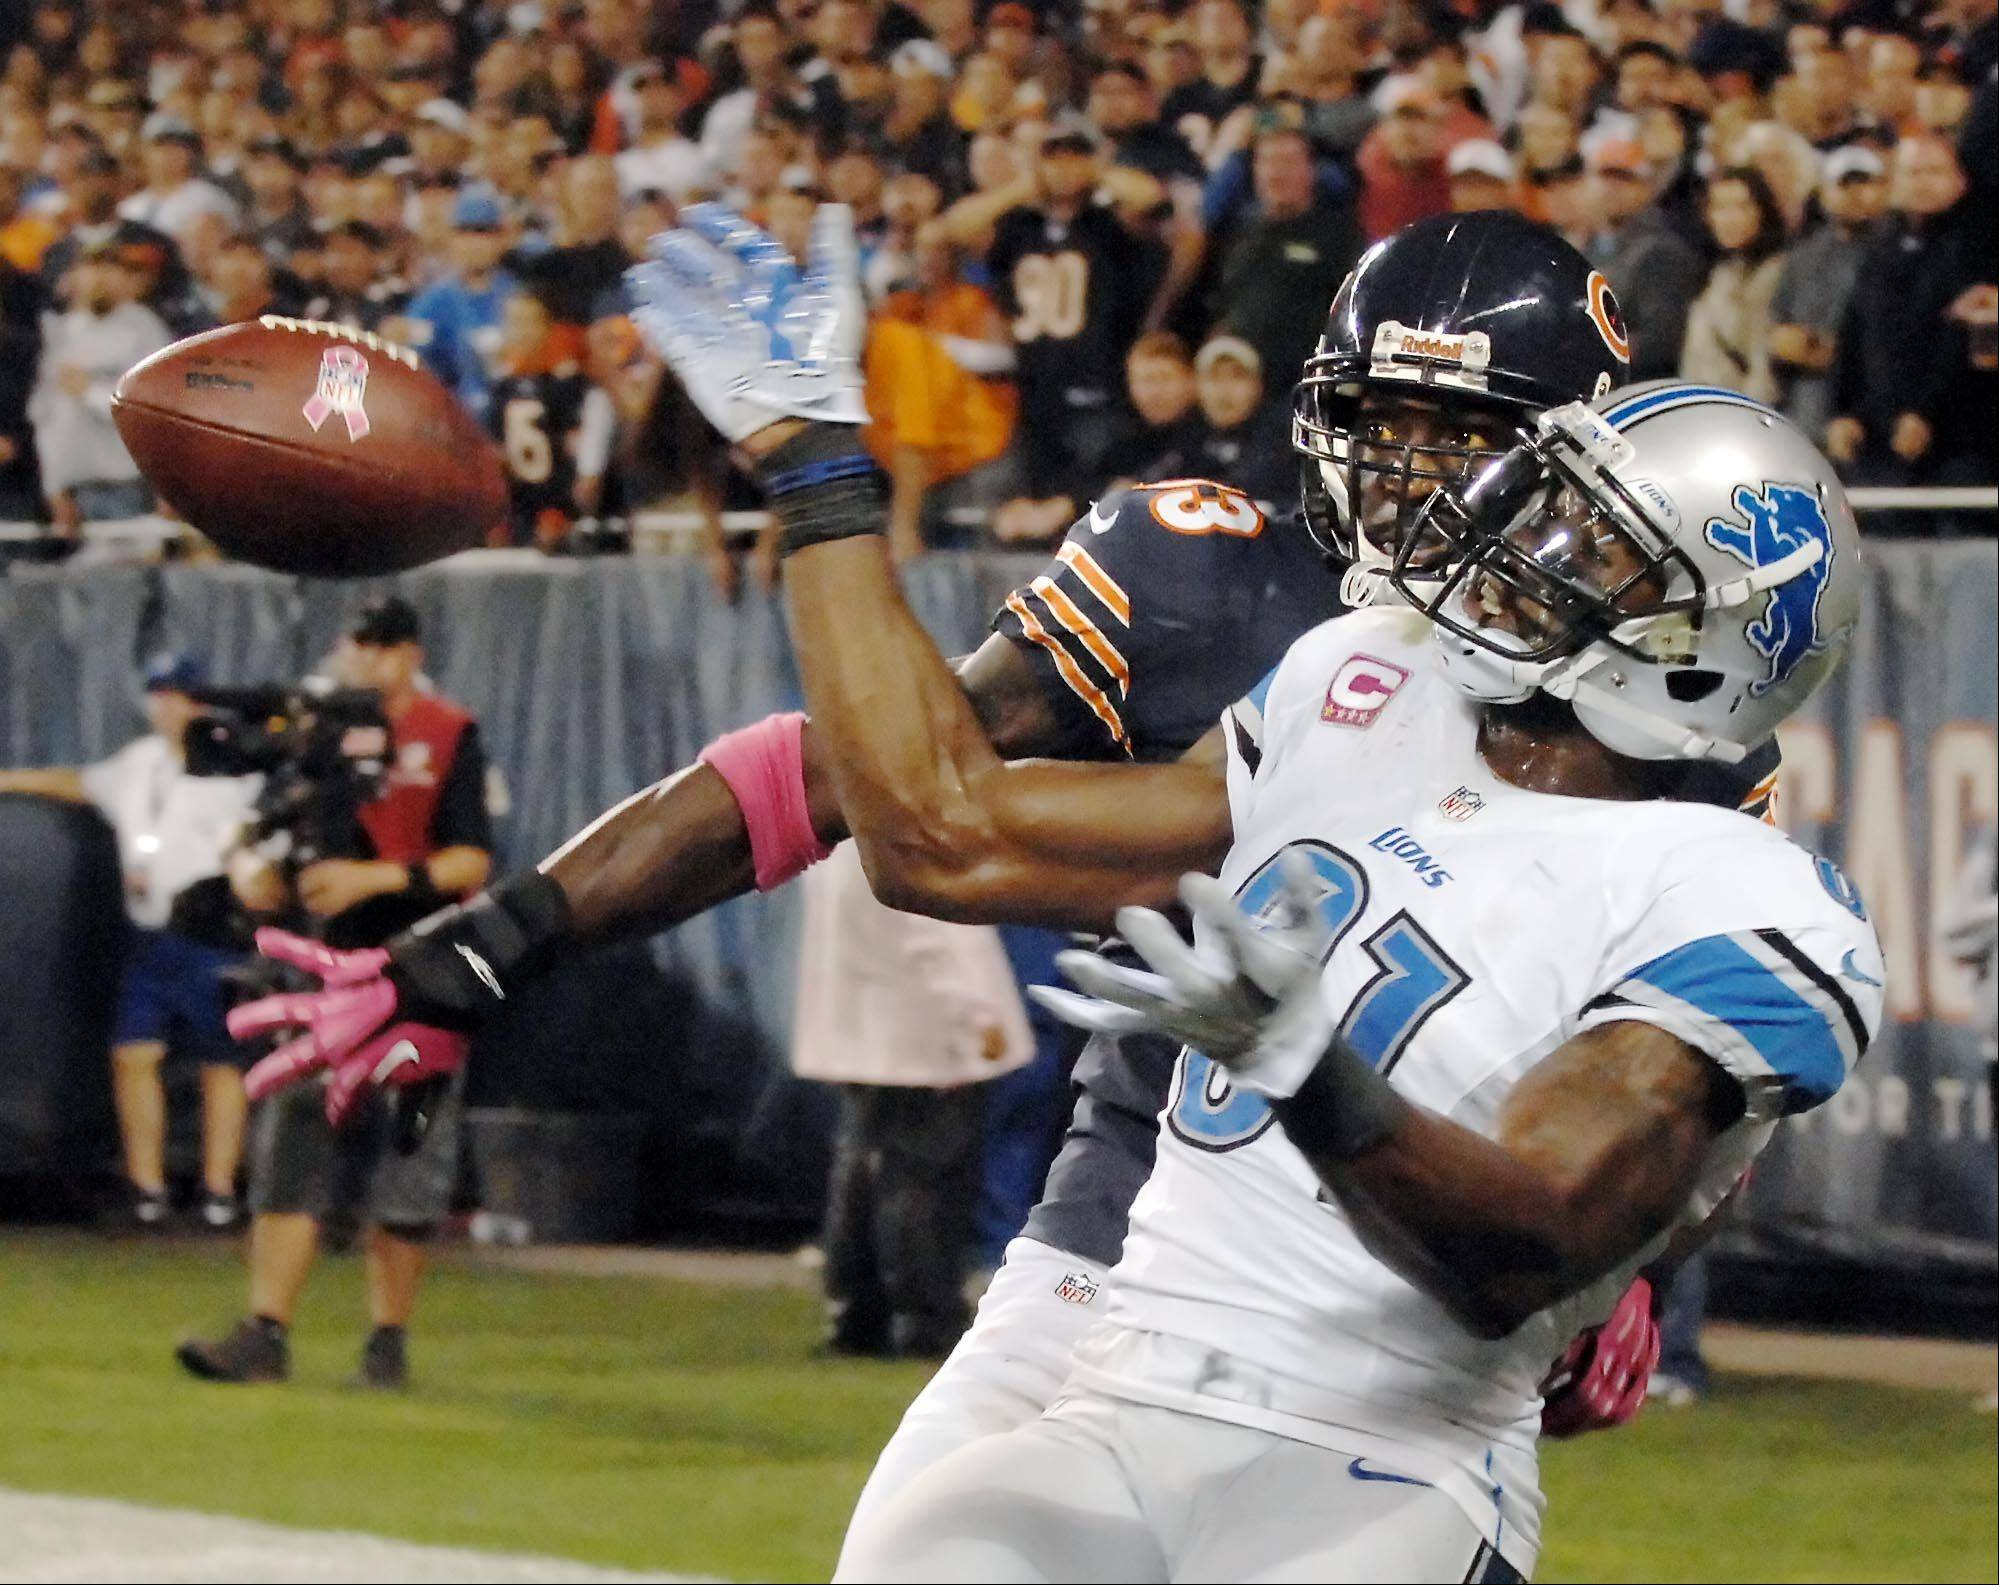 Bears cornerback Charles Tillman's stellar play against Detroit Lions wide receiver Calvin Johnson helped to earn him NFC Defensive Player of the Month honors for October.